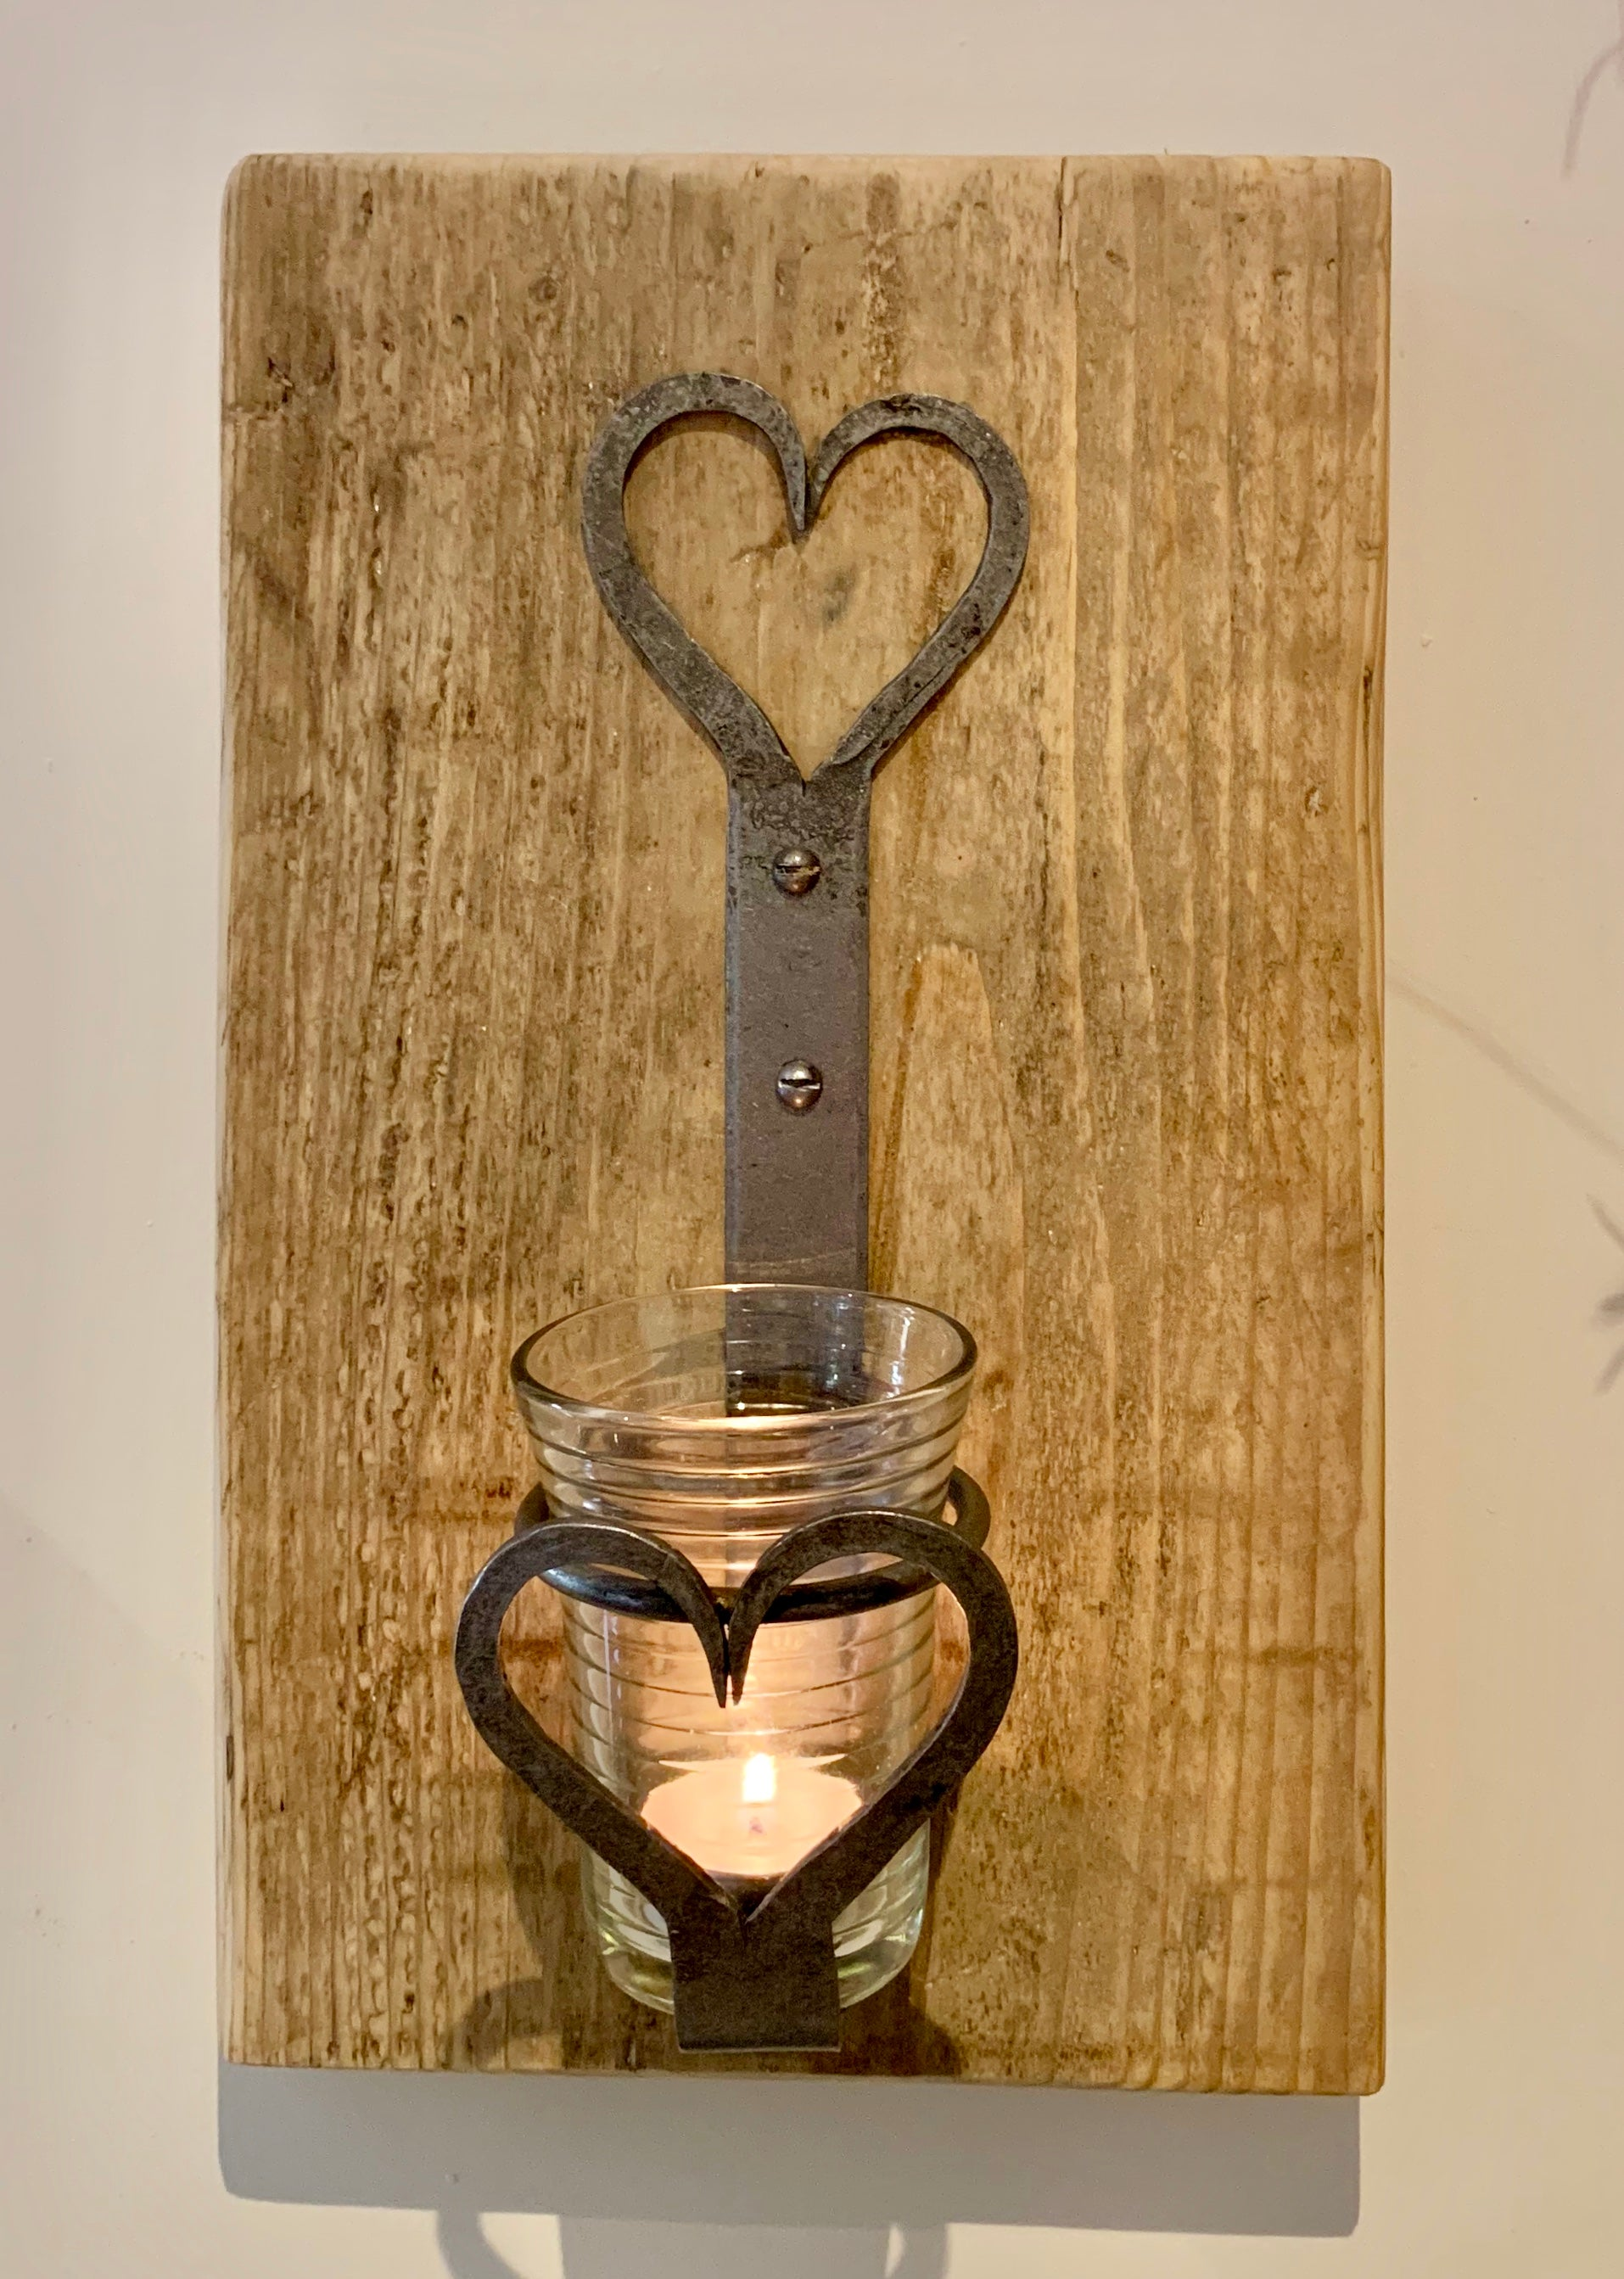 Handmade Antique Iron Wall Candle Holder